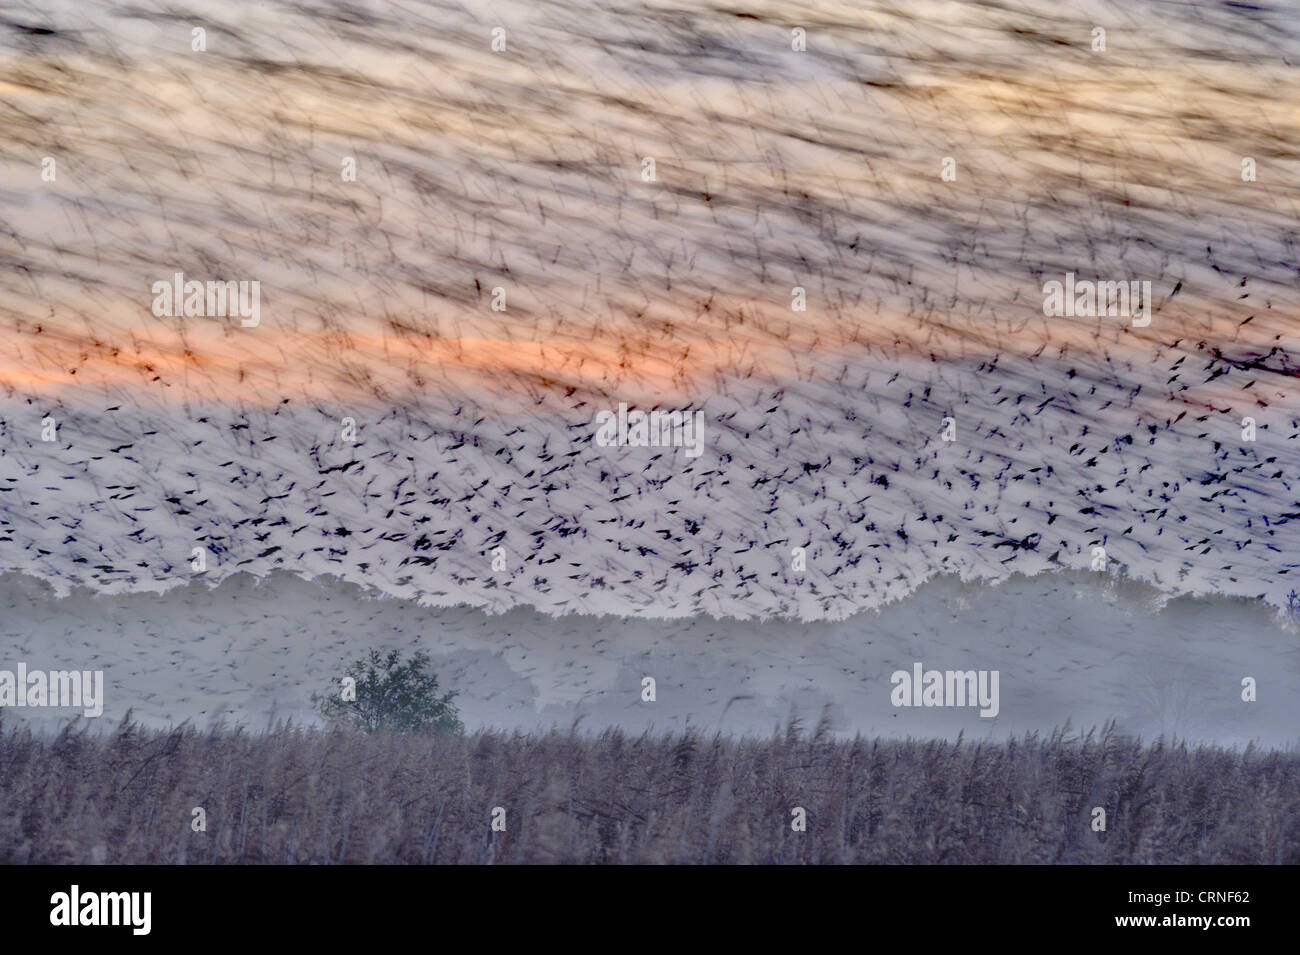 Common Starling (Sturnus vulgaris) flock, in roosting flight, blurred movement, over coastal reedbed habitat at Stock Photo